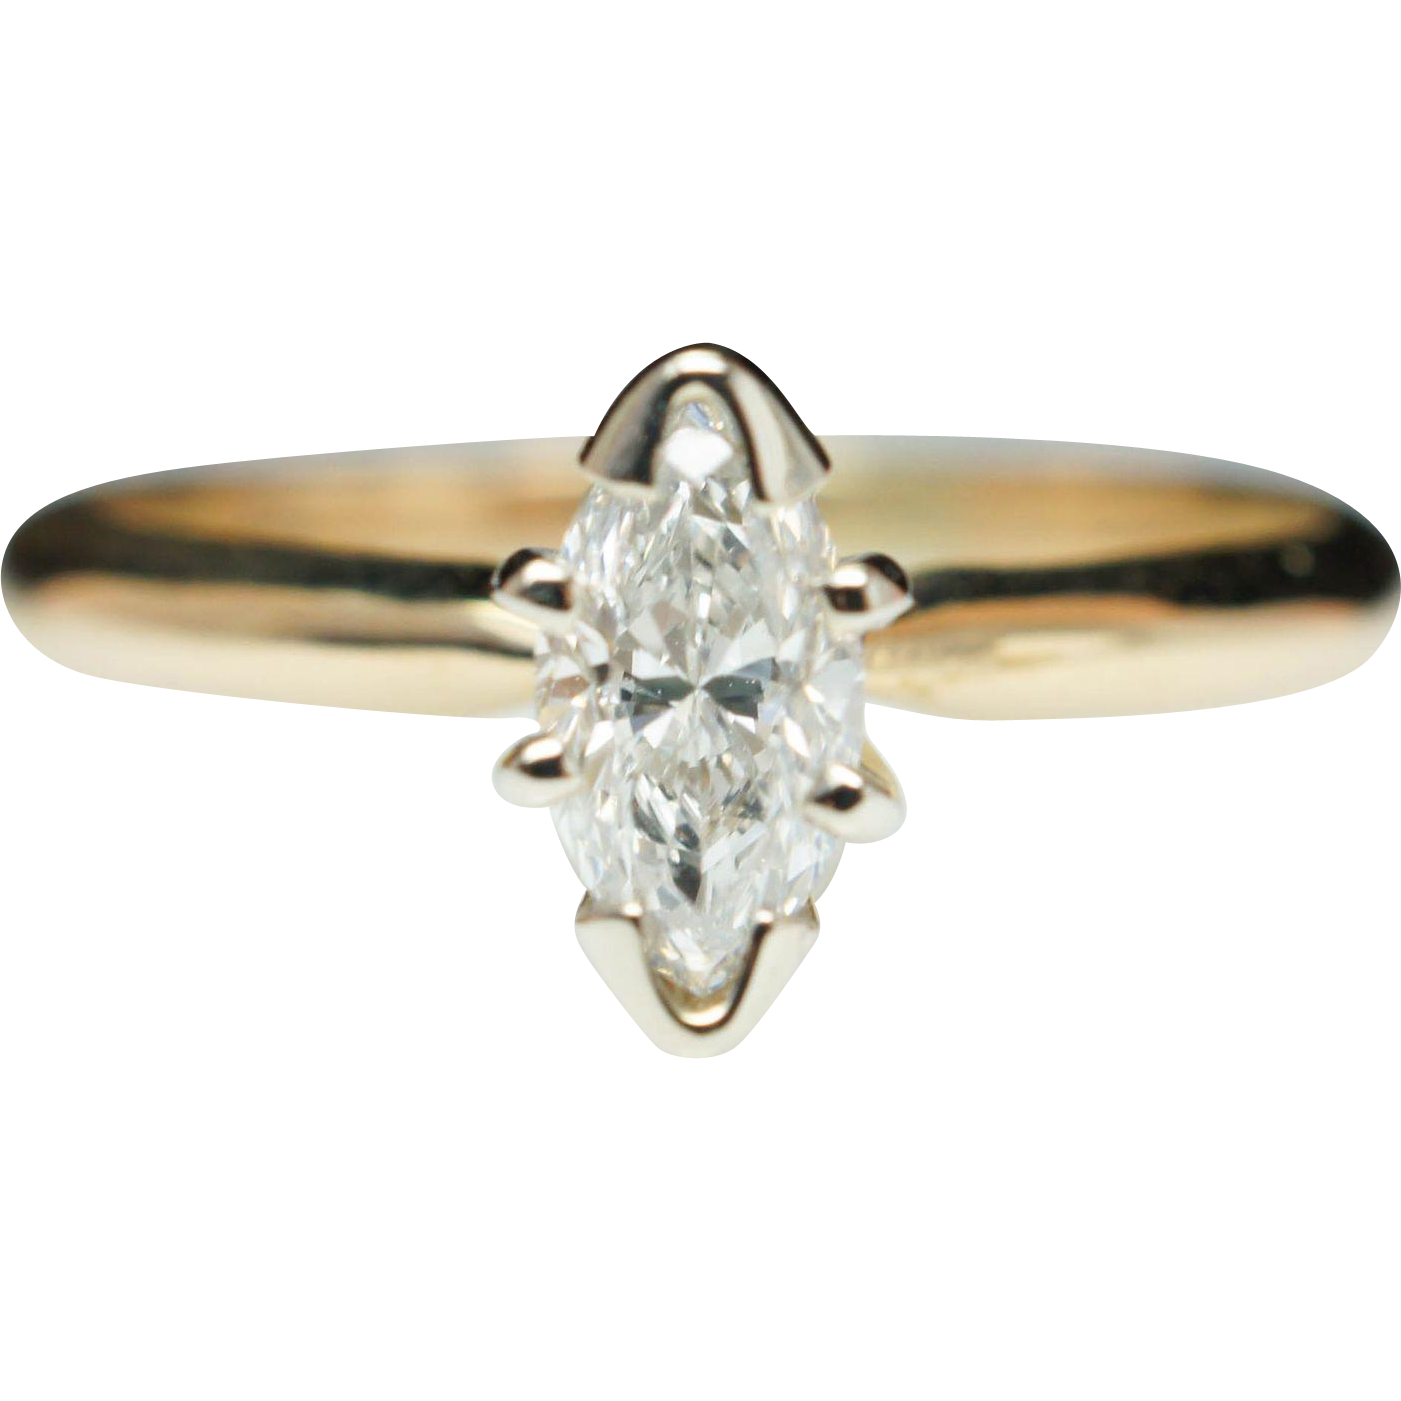 Vintage 32ctw Marquise Diamond Engagement Ring 14k Yellow Gold from jkjc on